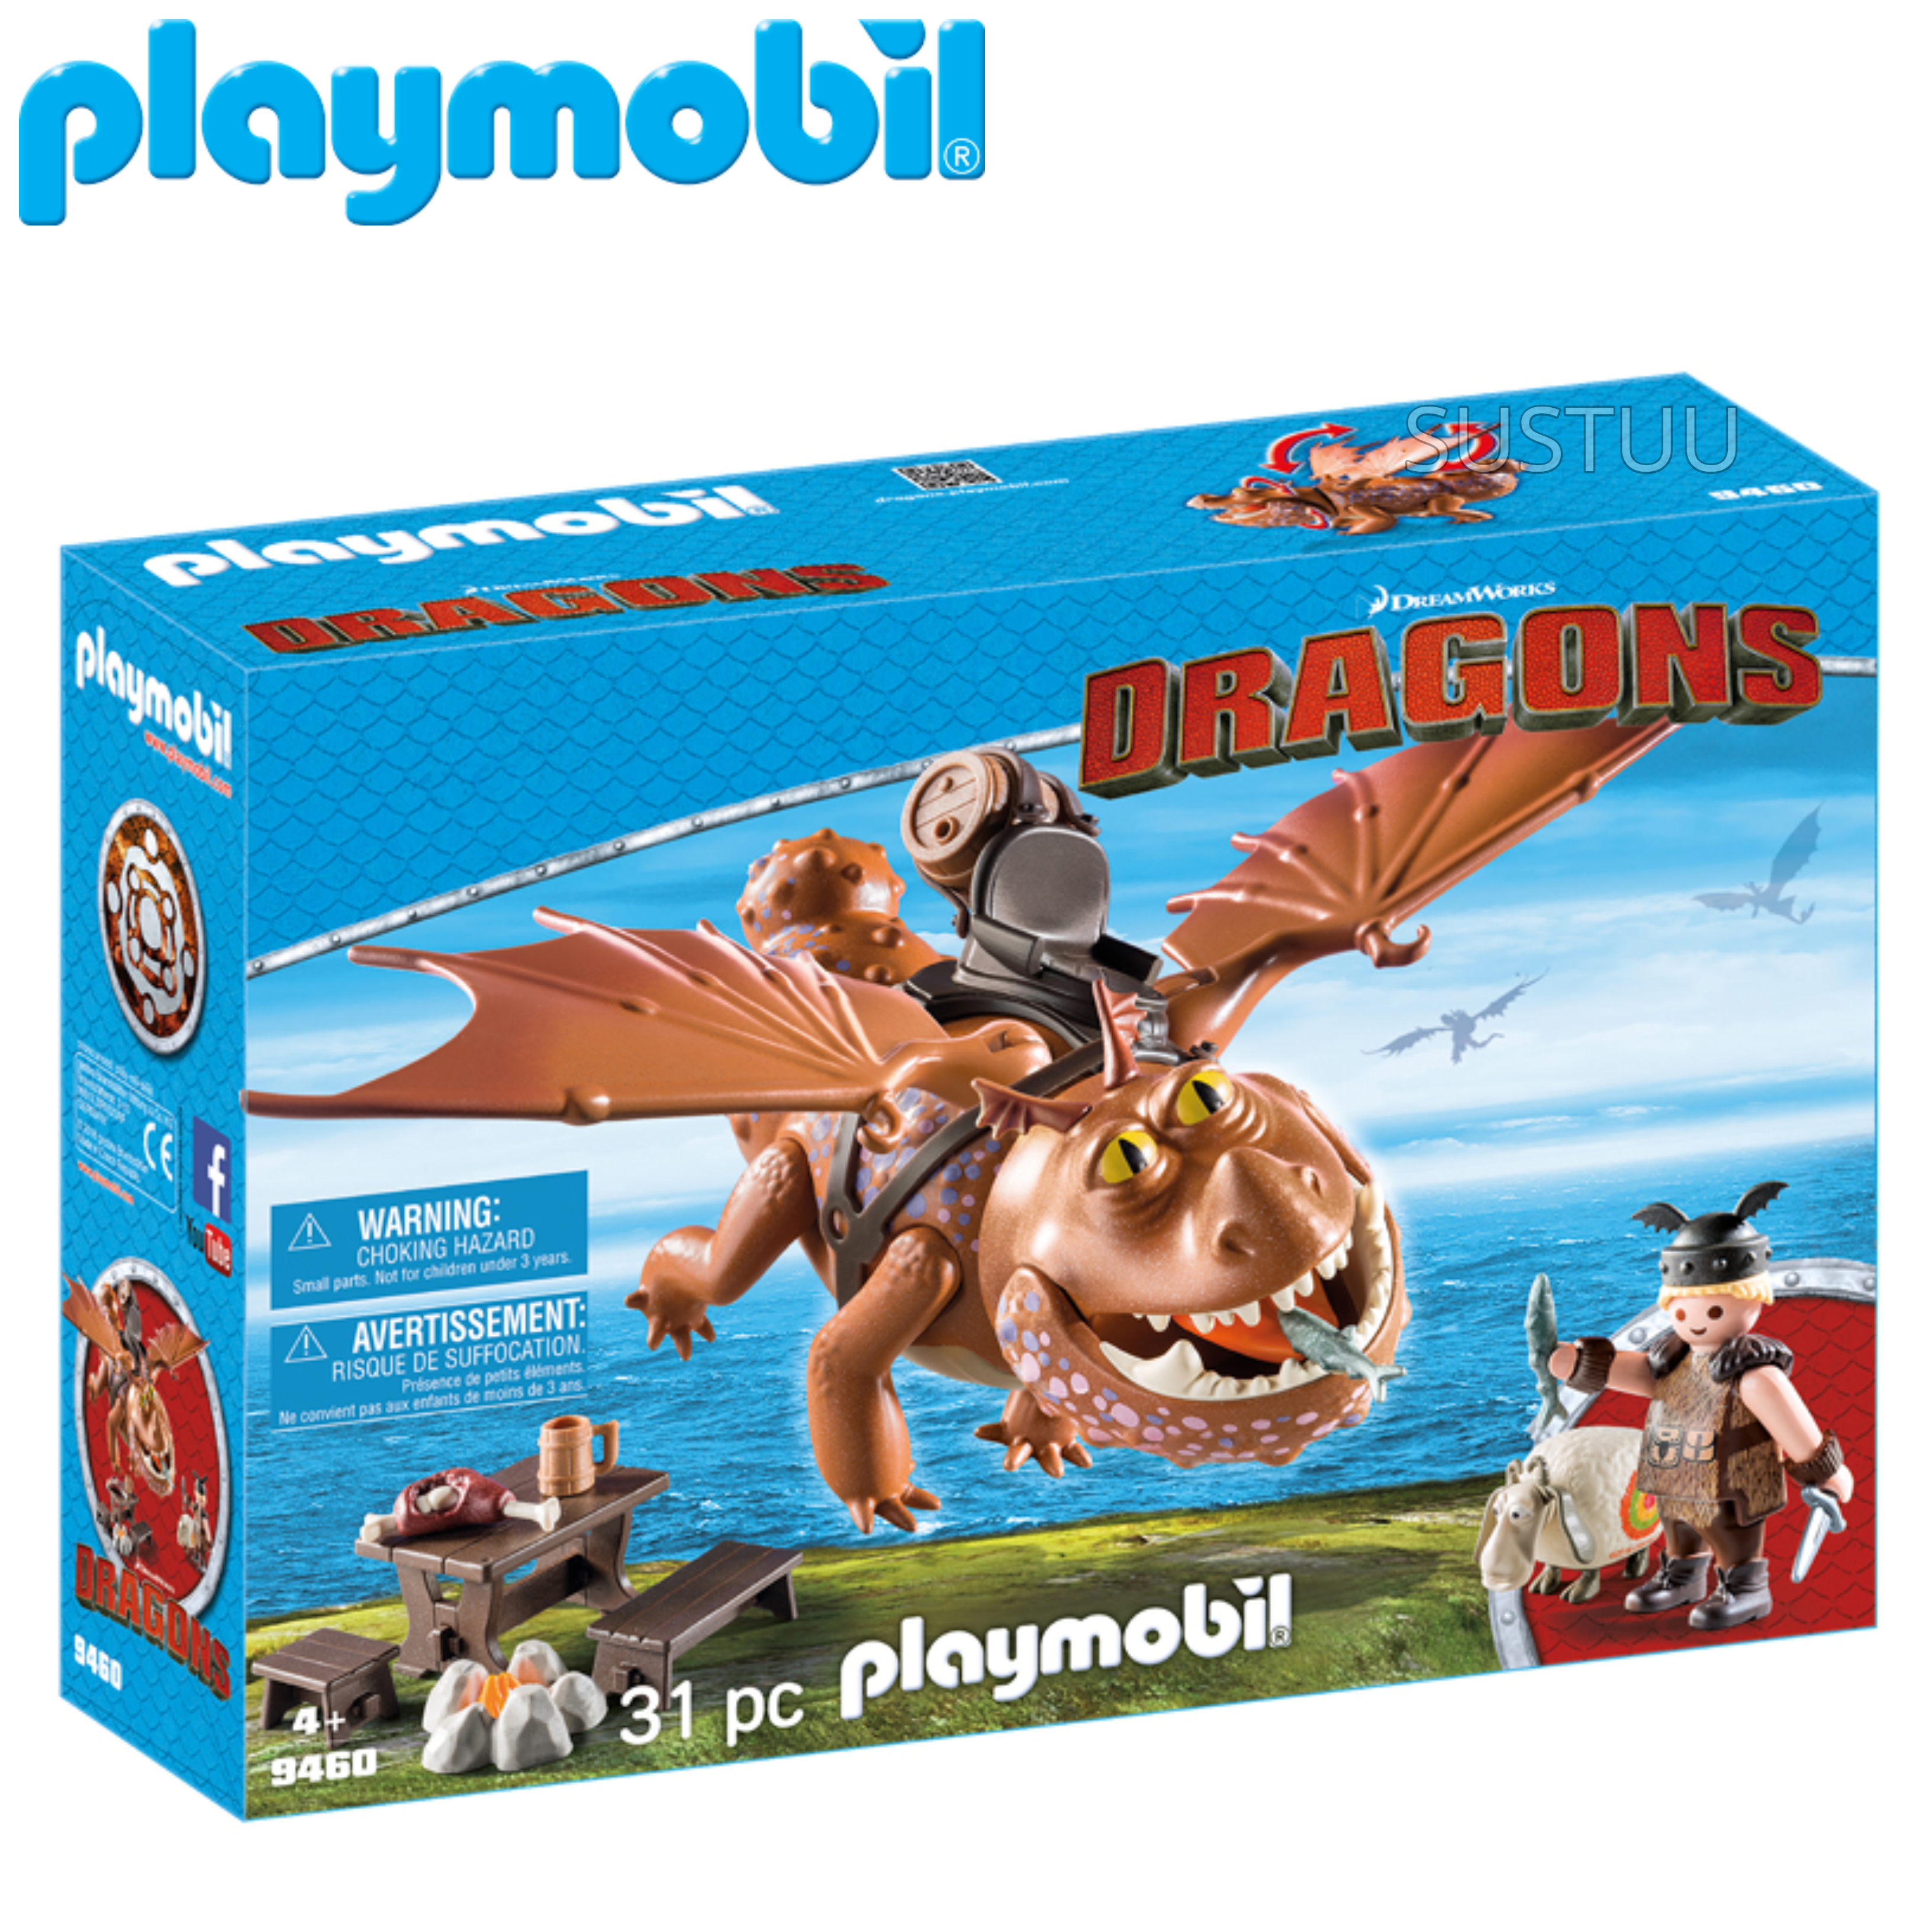 Playmobil Fishlegs and Meatlug | Baby's Interactive Playset/Realistic Toys | +4 Year